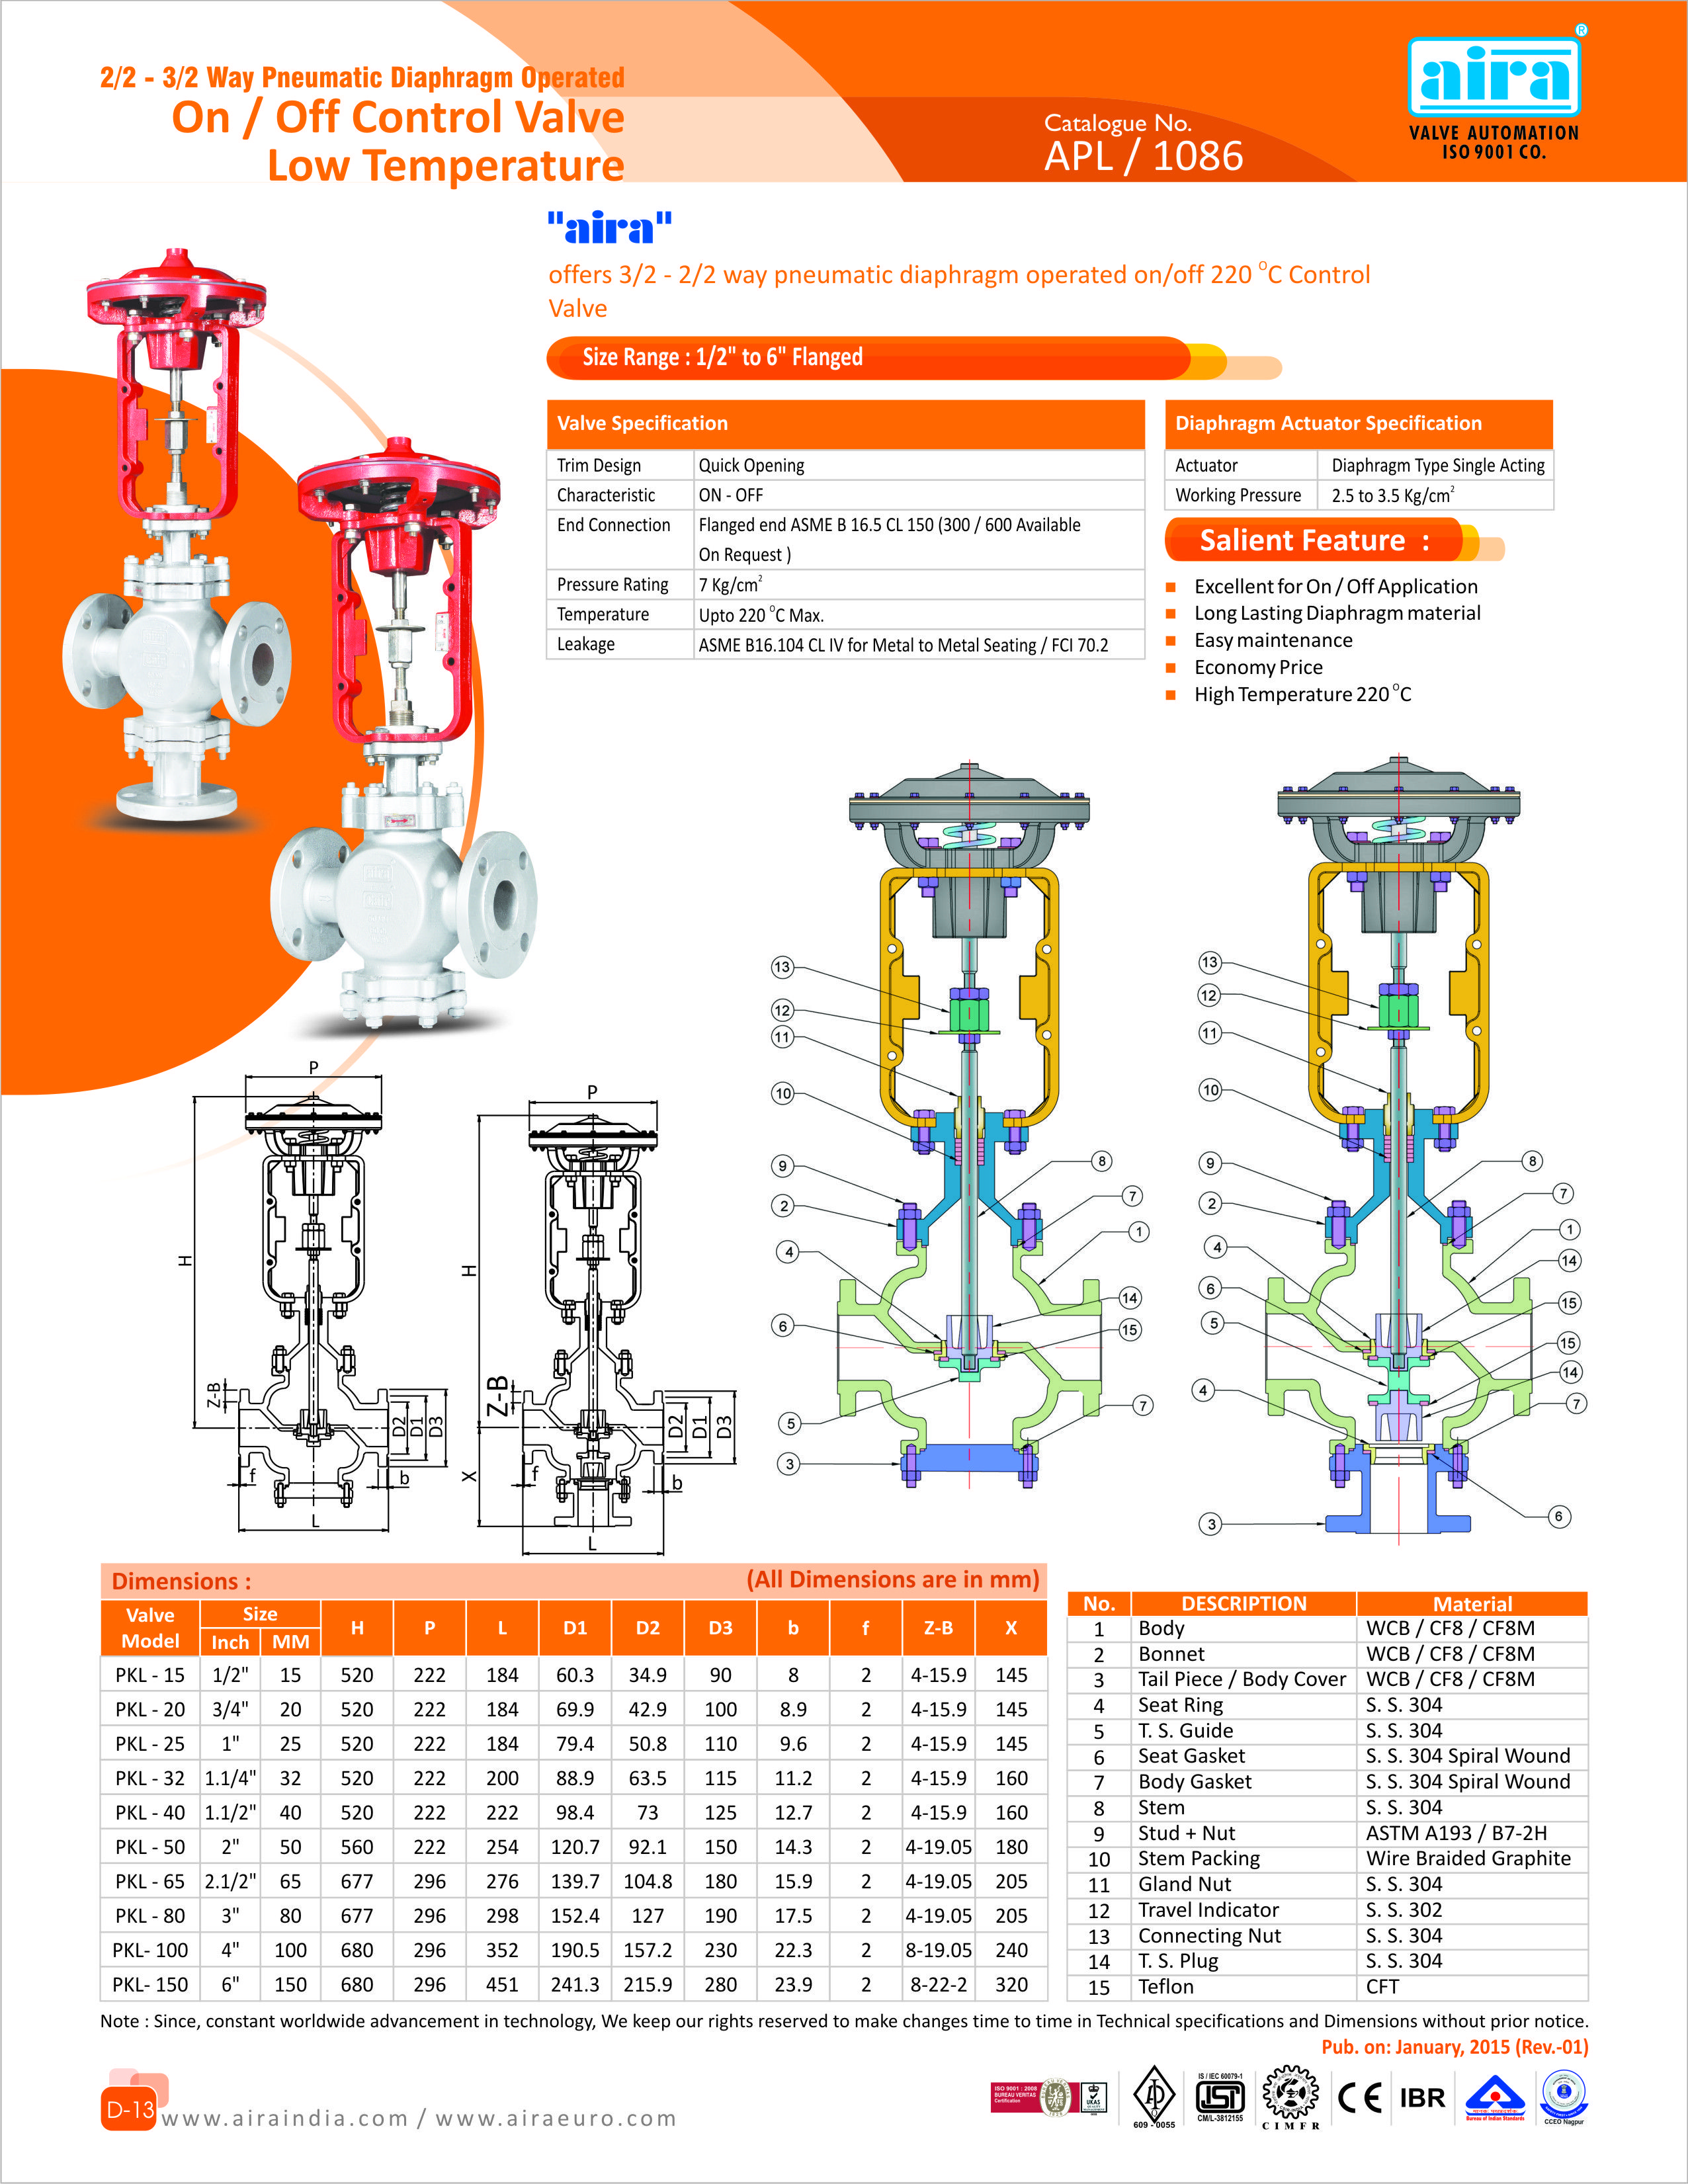 medium resolution of 2 2 3 2 way pneumatic diaphragm operated on off control valve low temperature for more info visit now www airaindia com